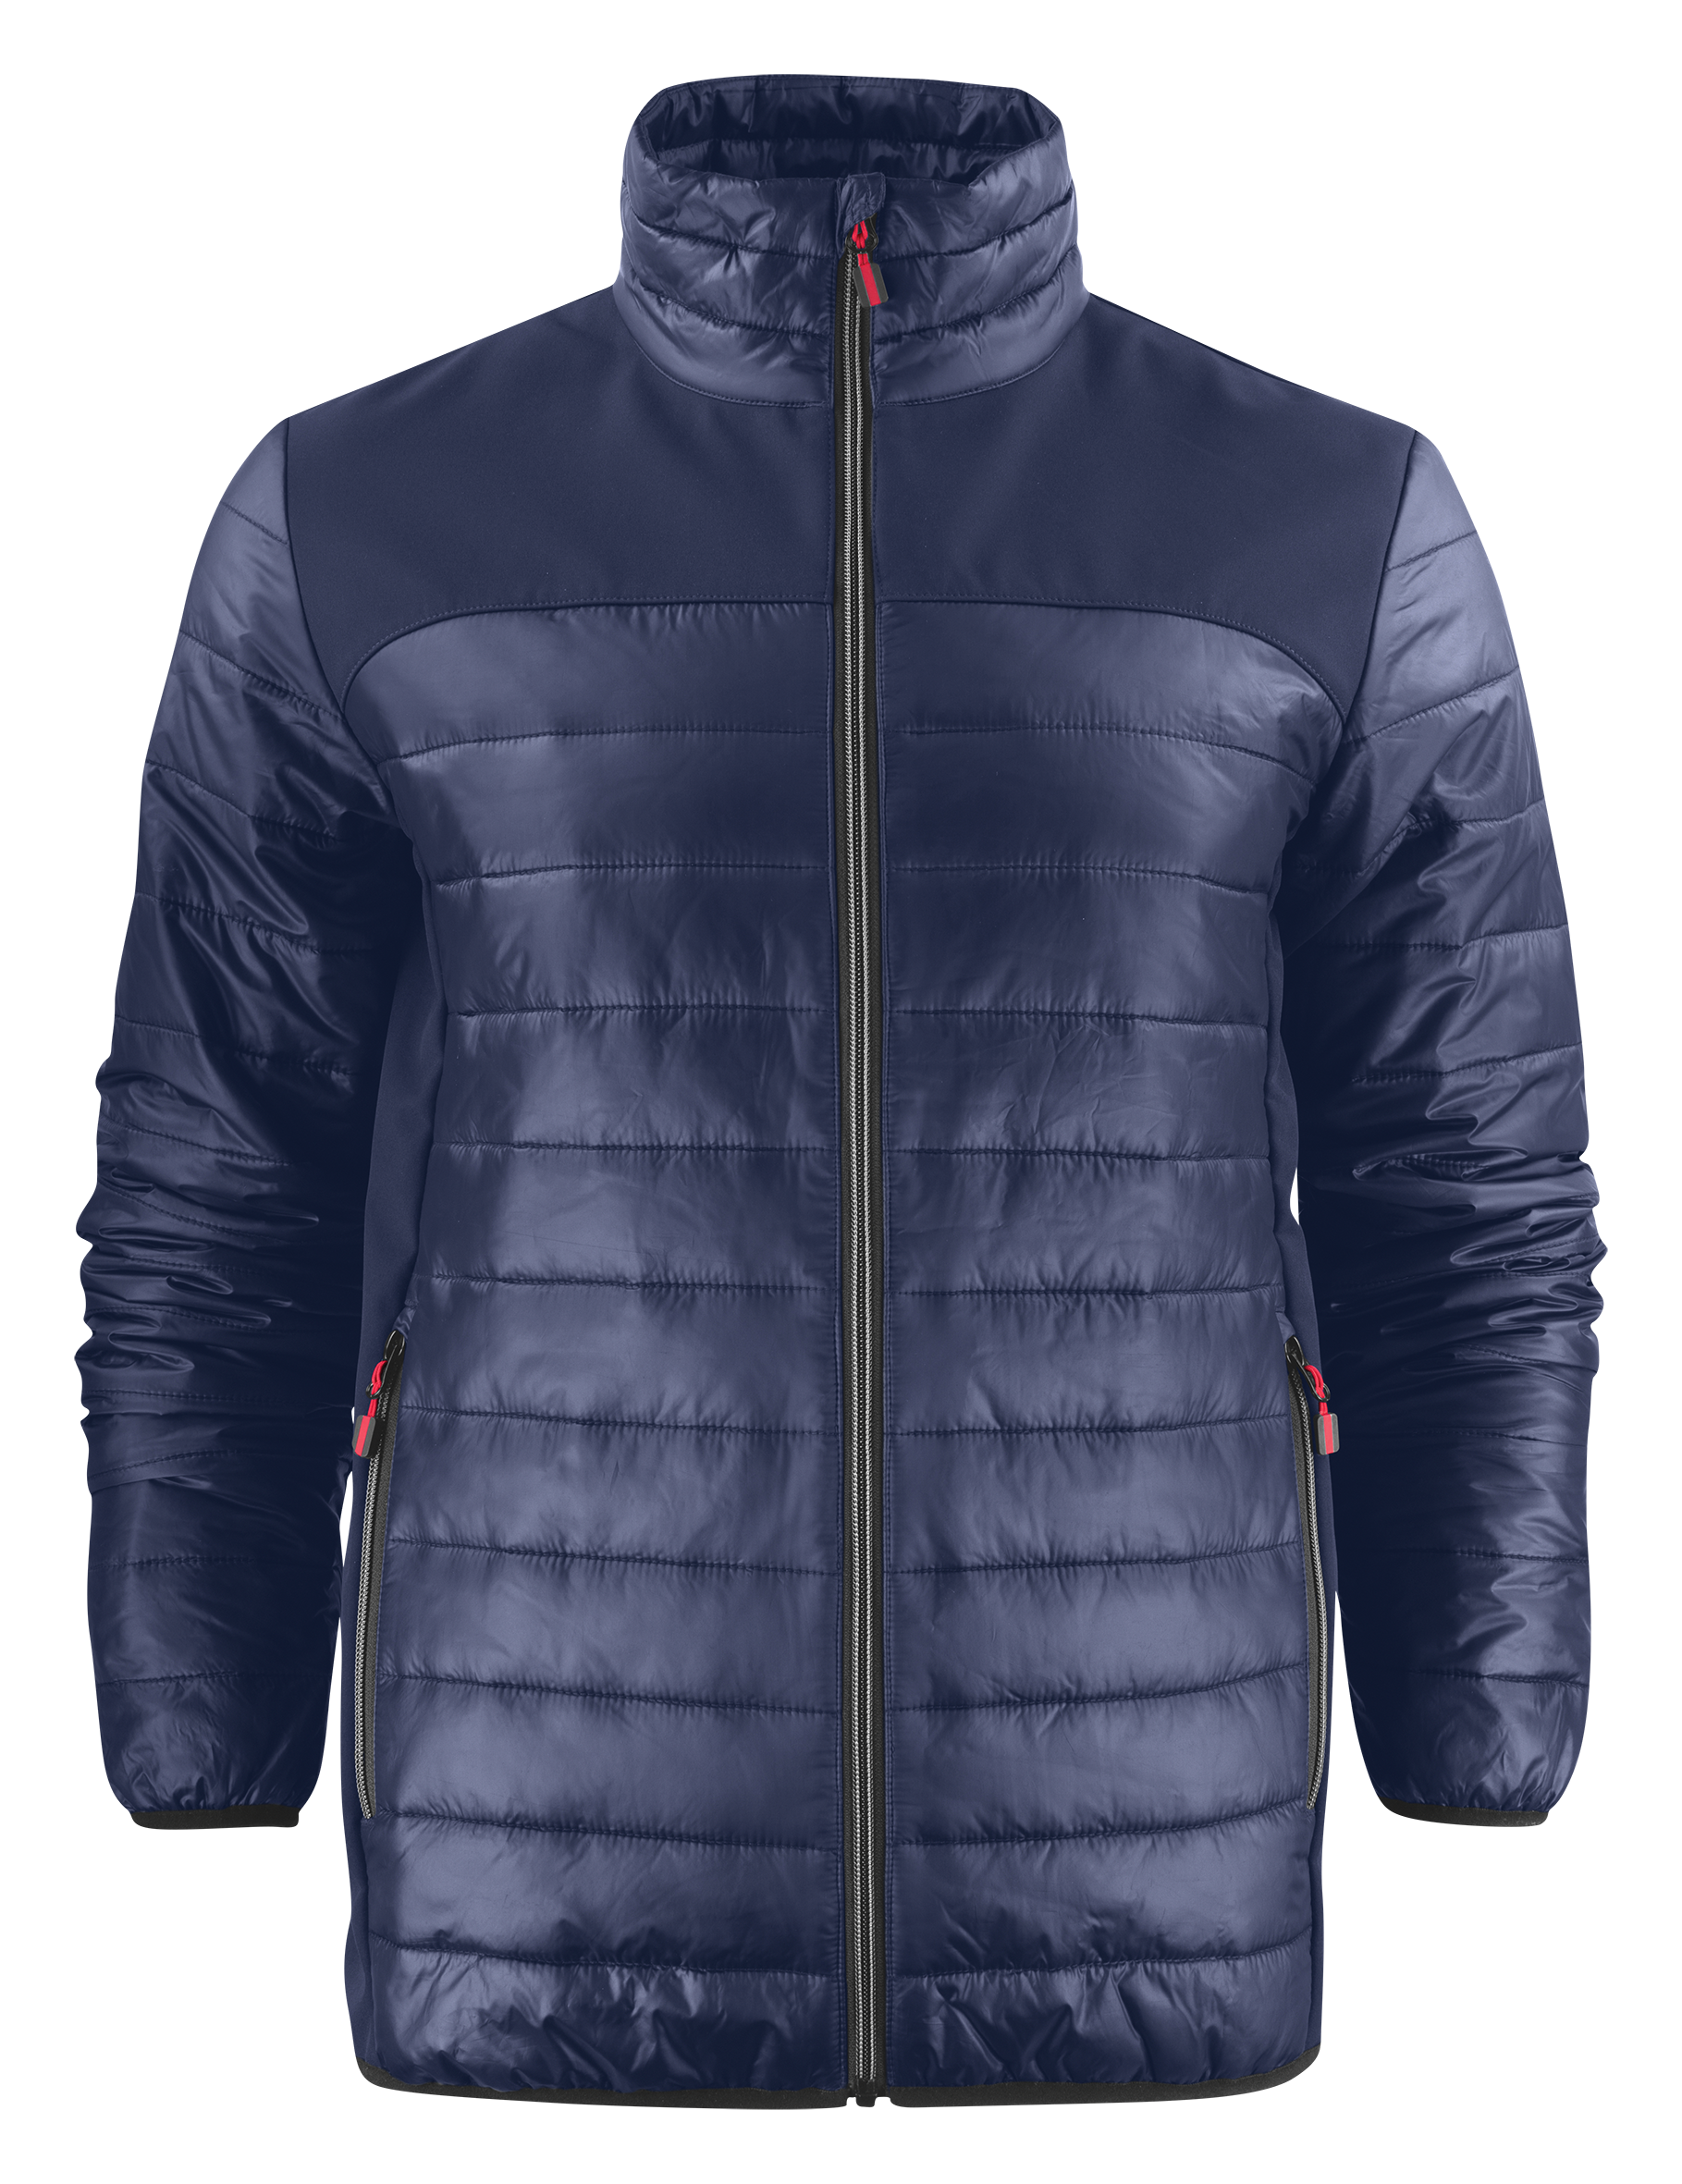 Unisex Expedition Jacket in Navy